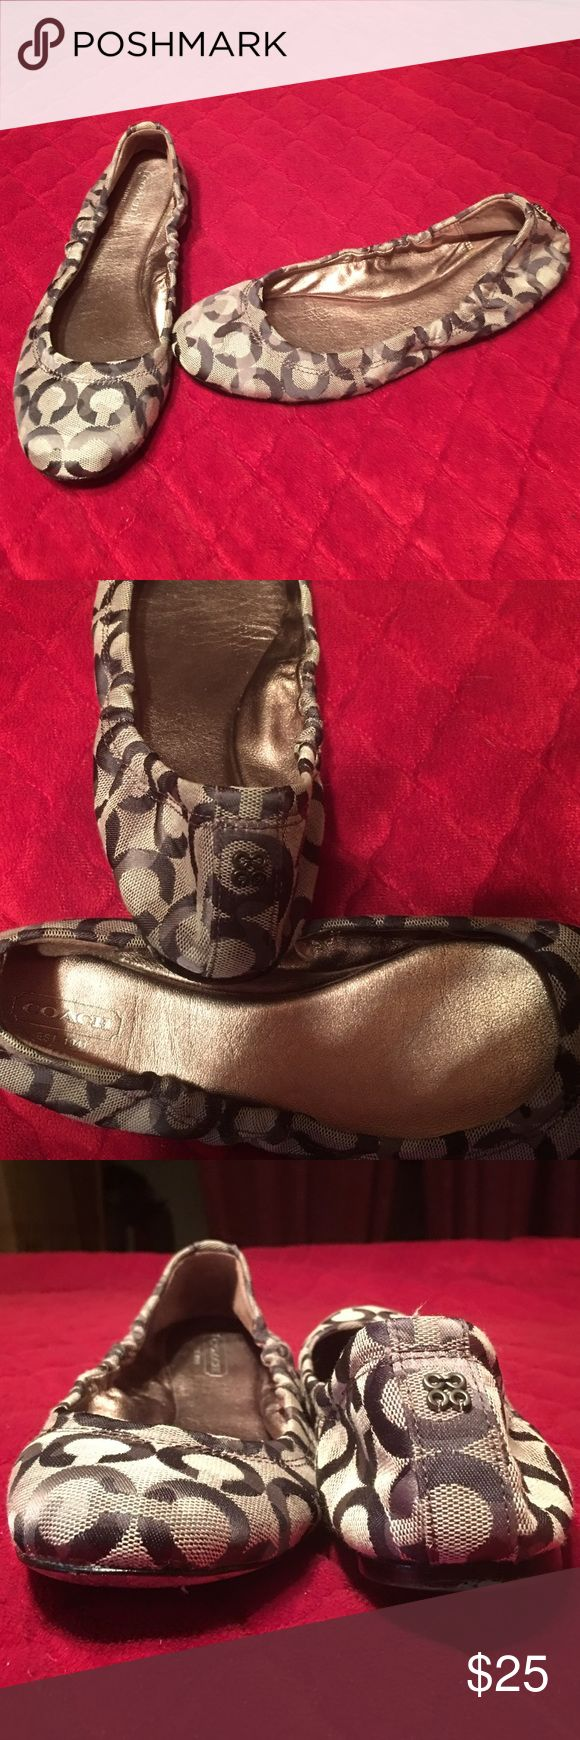 Coach signature flats 9 EUC Coach flats in various shades of brown. Im Reposhing only because they don't fit me. They seem to be a true 9. Other than the wear on the sole, they are in great shape. Really cute too. I wish they fit me. 😪 Coach Shoes Flats & Loafers